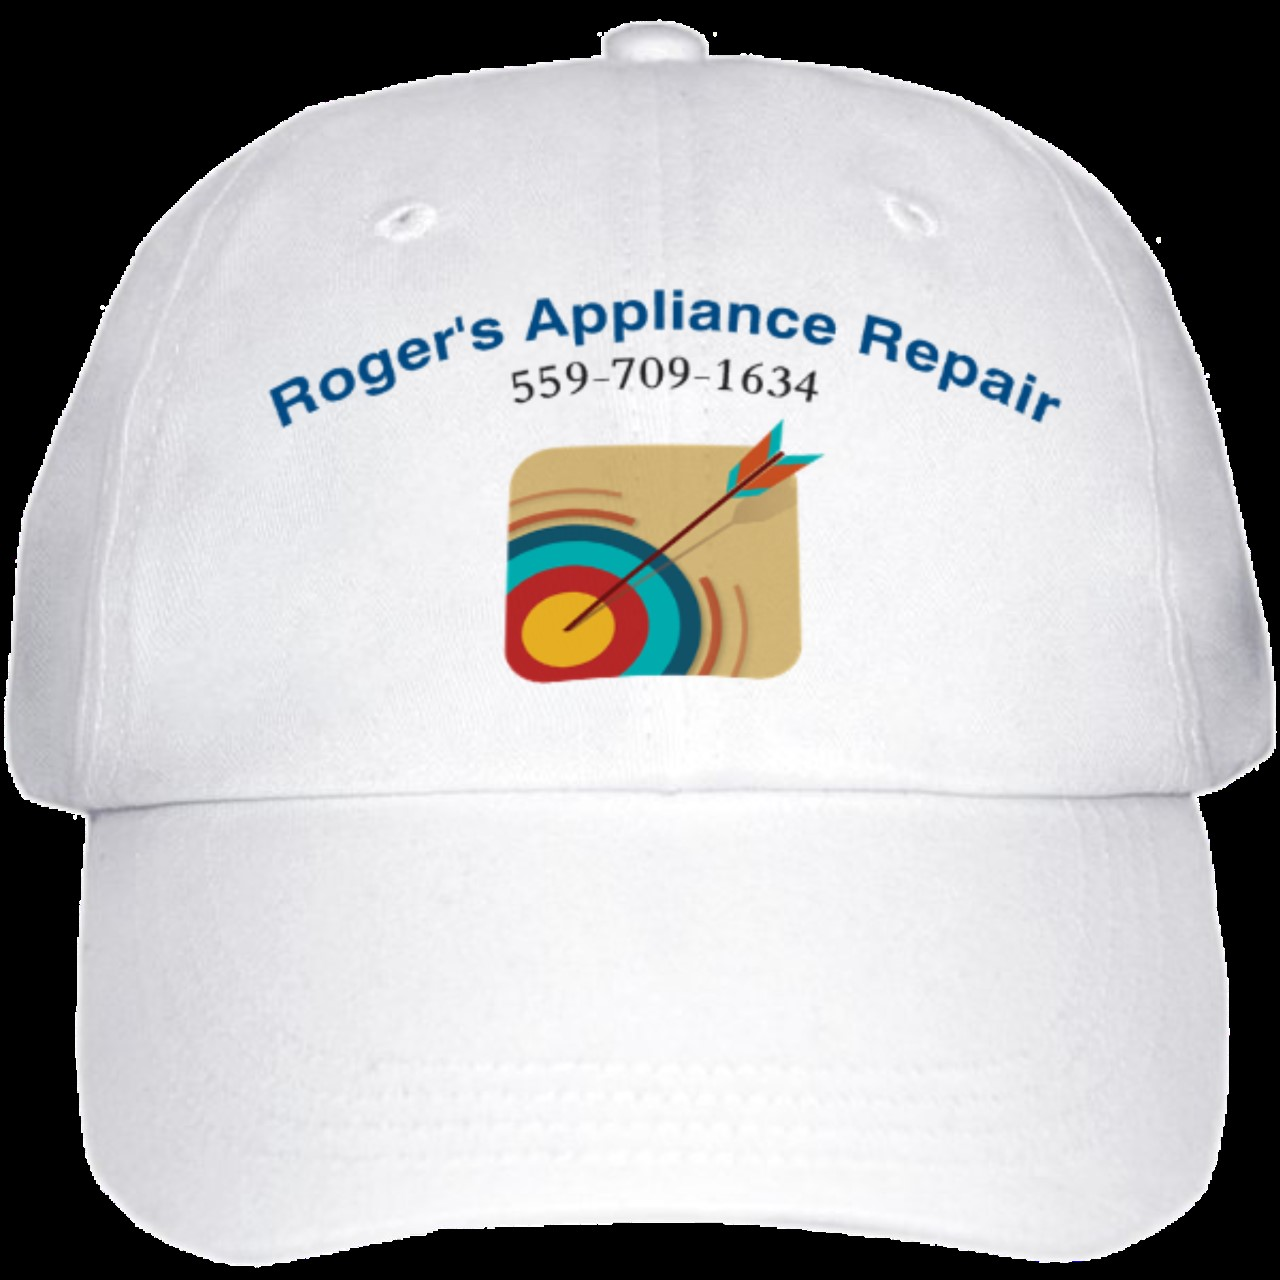 Roger's Appliance Repair image 3